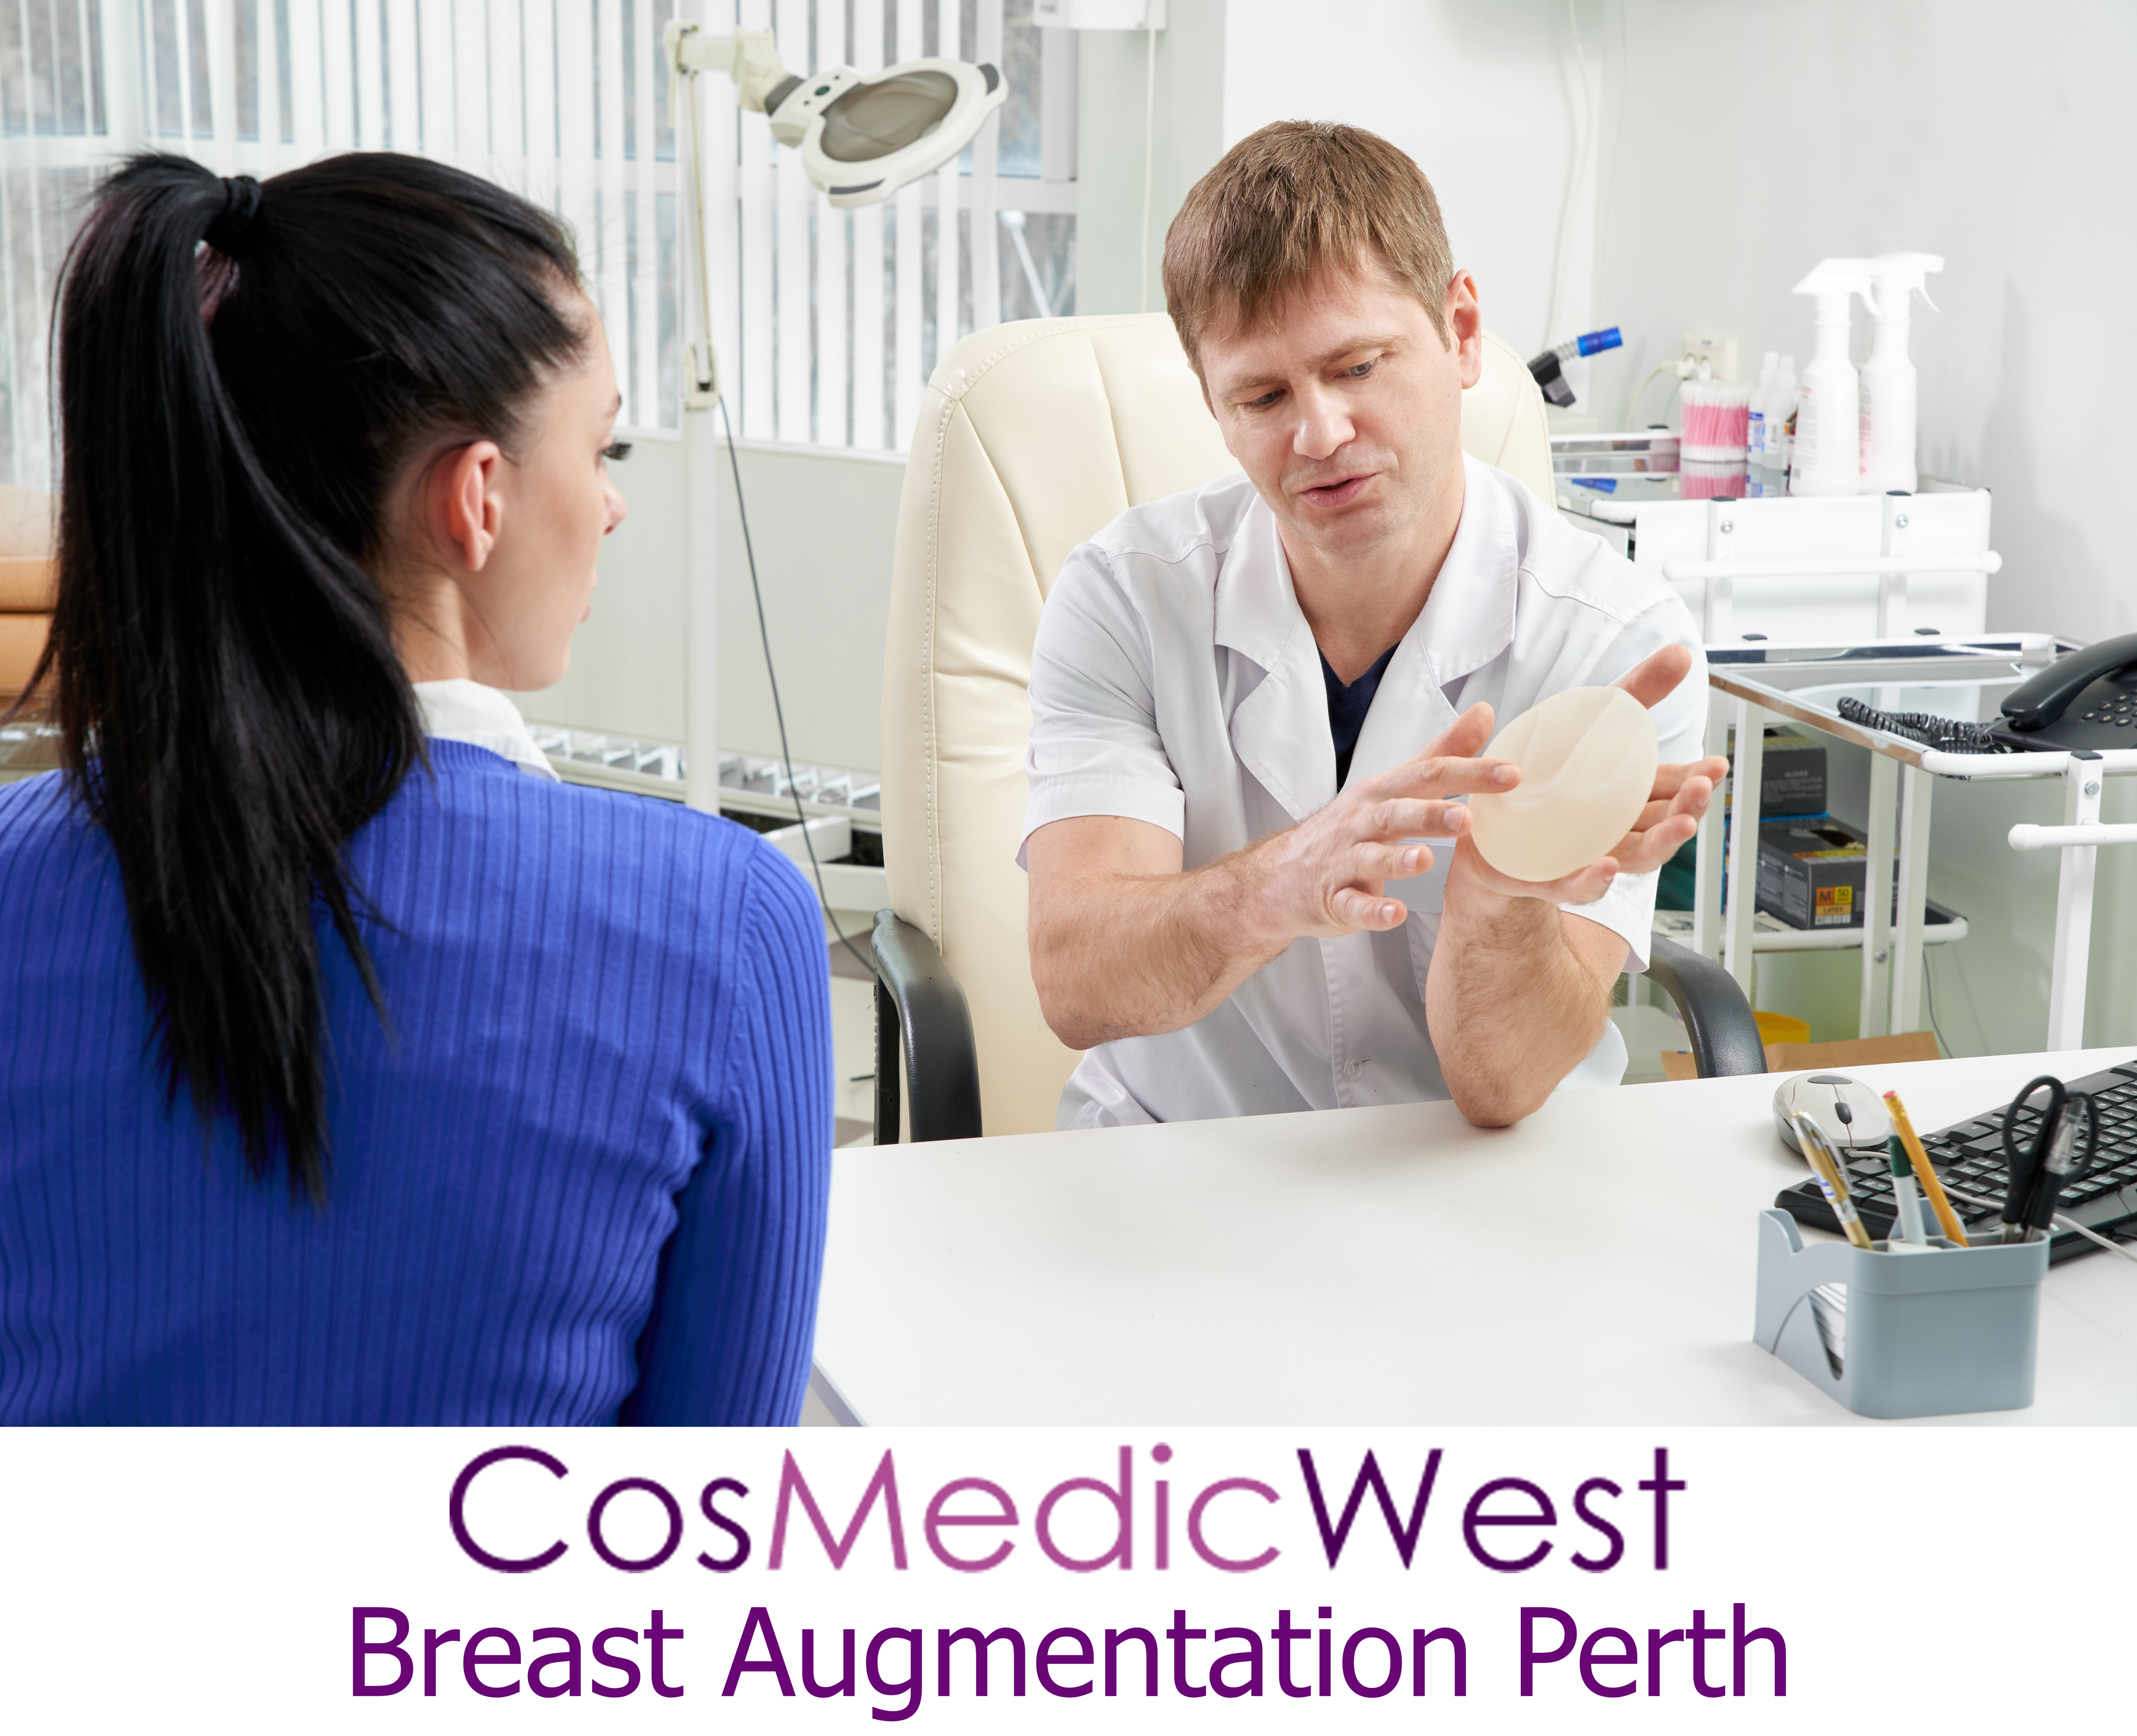 Breast Augmentation Perth - CosmedicWest